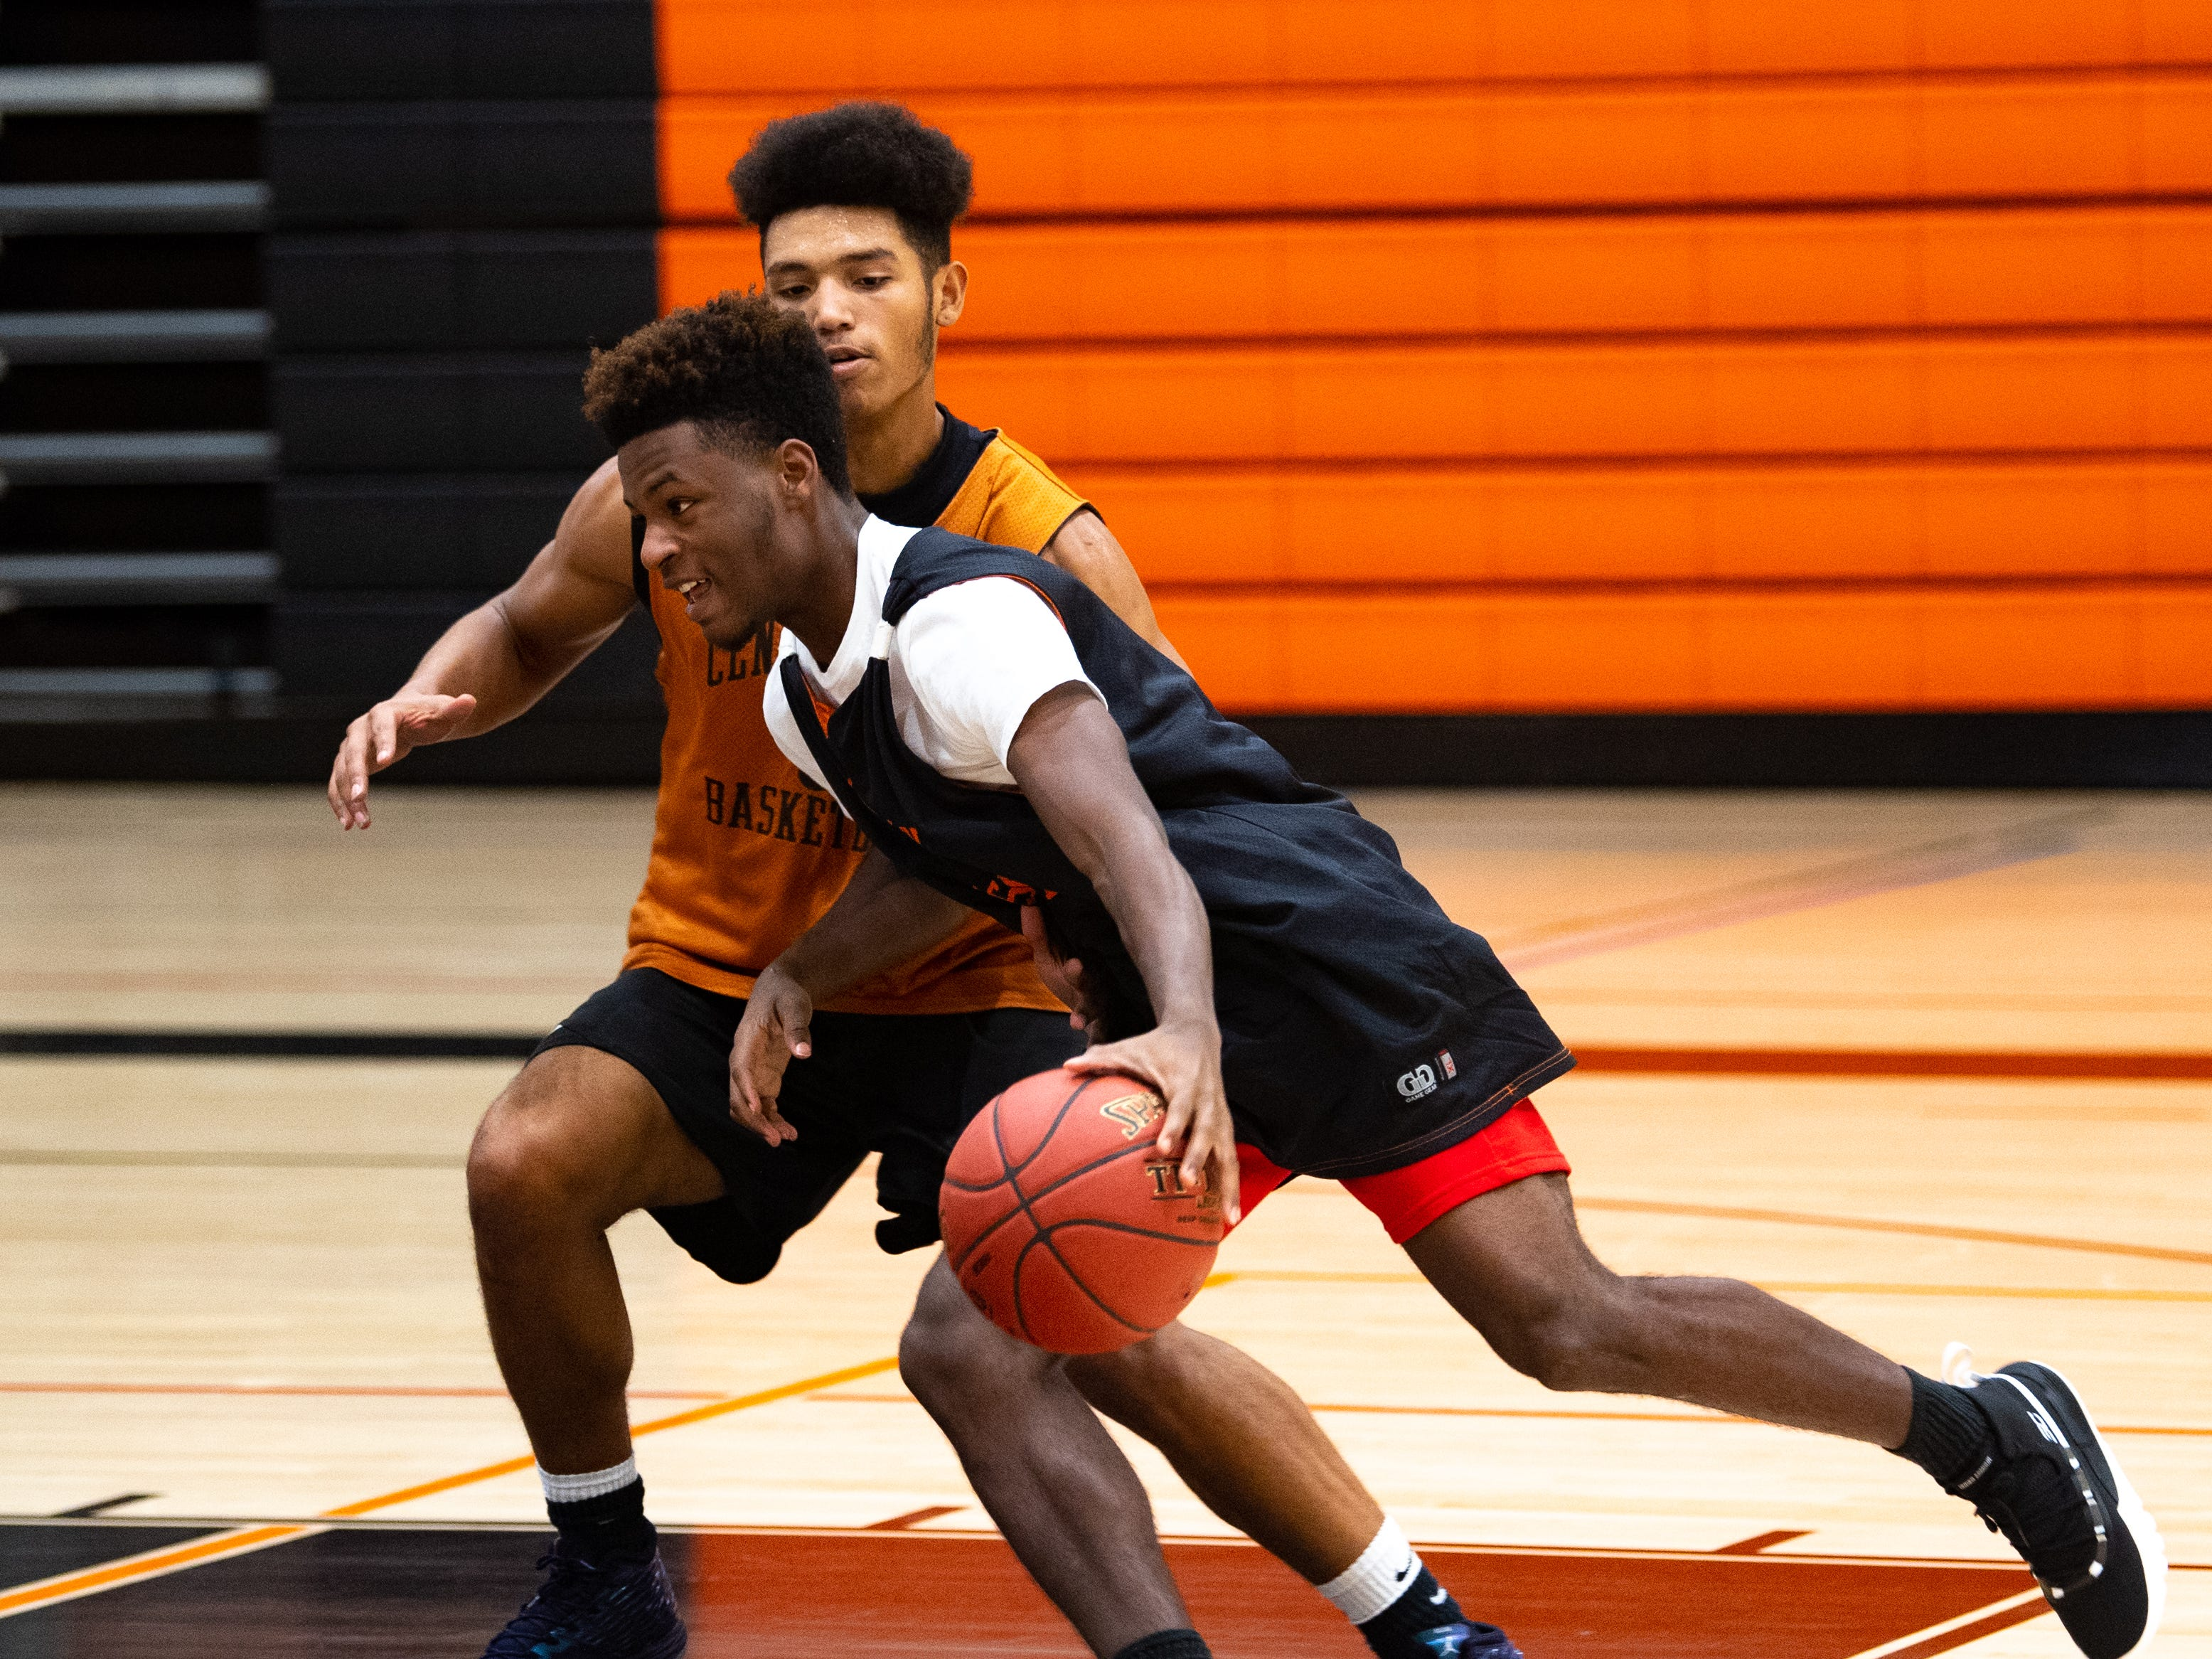 Central York boys' basketball players must drive down the lane in this drill, Wednesday, November 21, 2018.